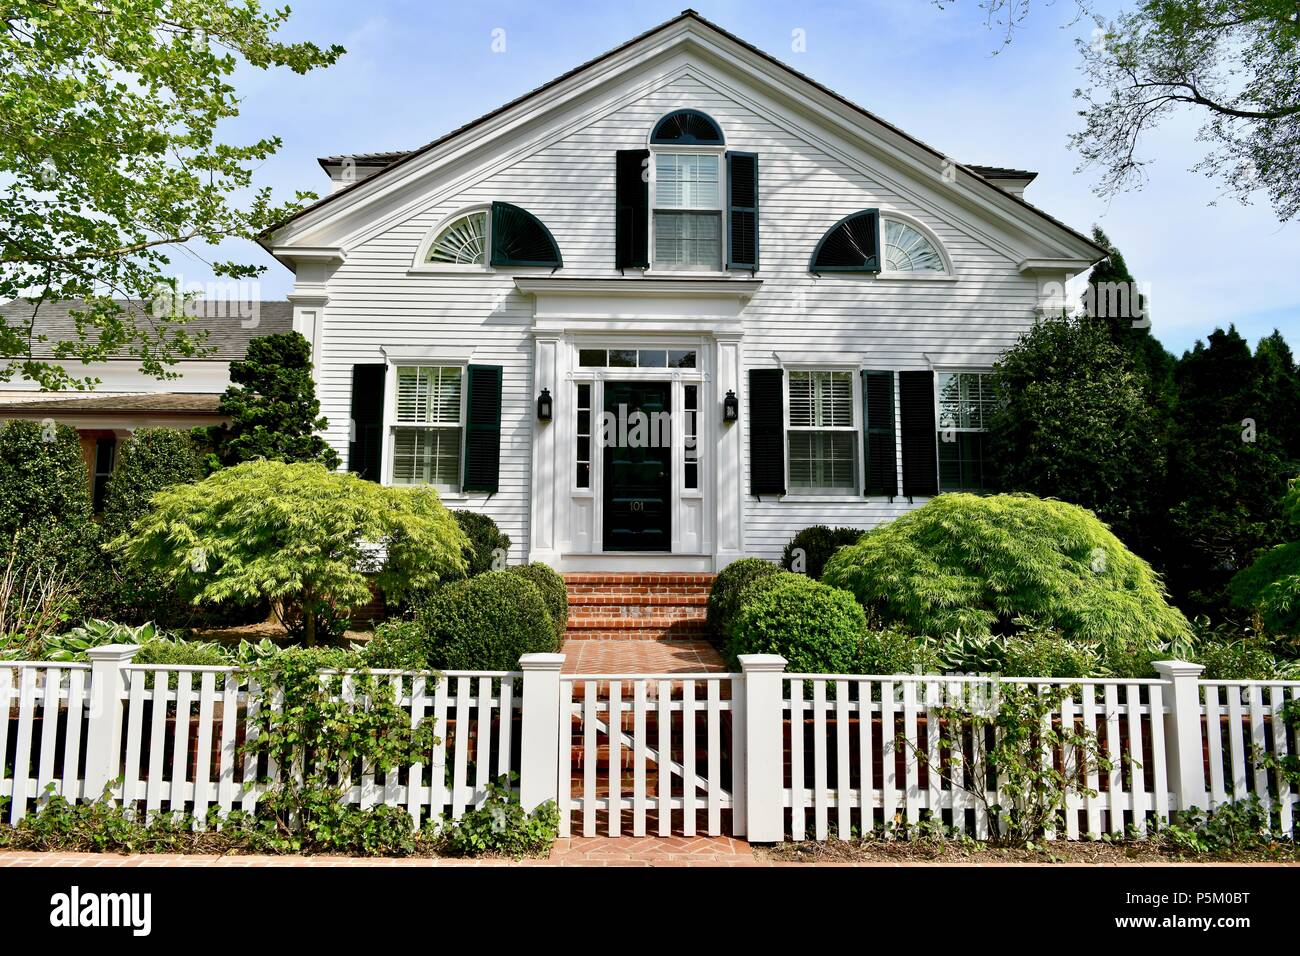 cape cod style home photos cape cod style home images alamy rh alamyimages fr Cape Cod Style Homes Exteriors Victorian Style Homes